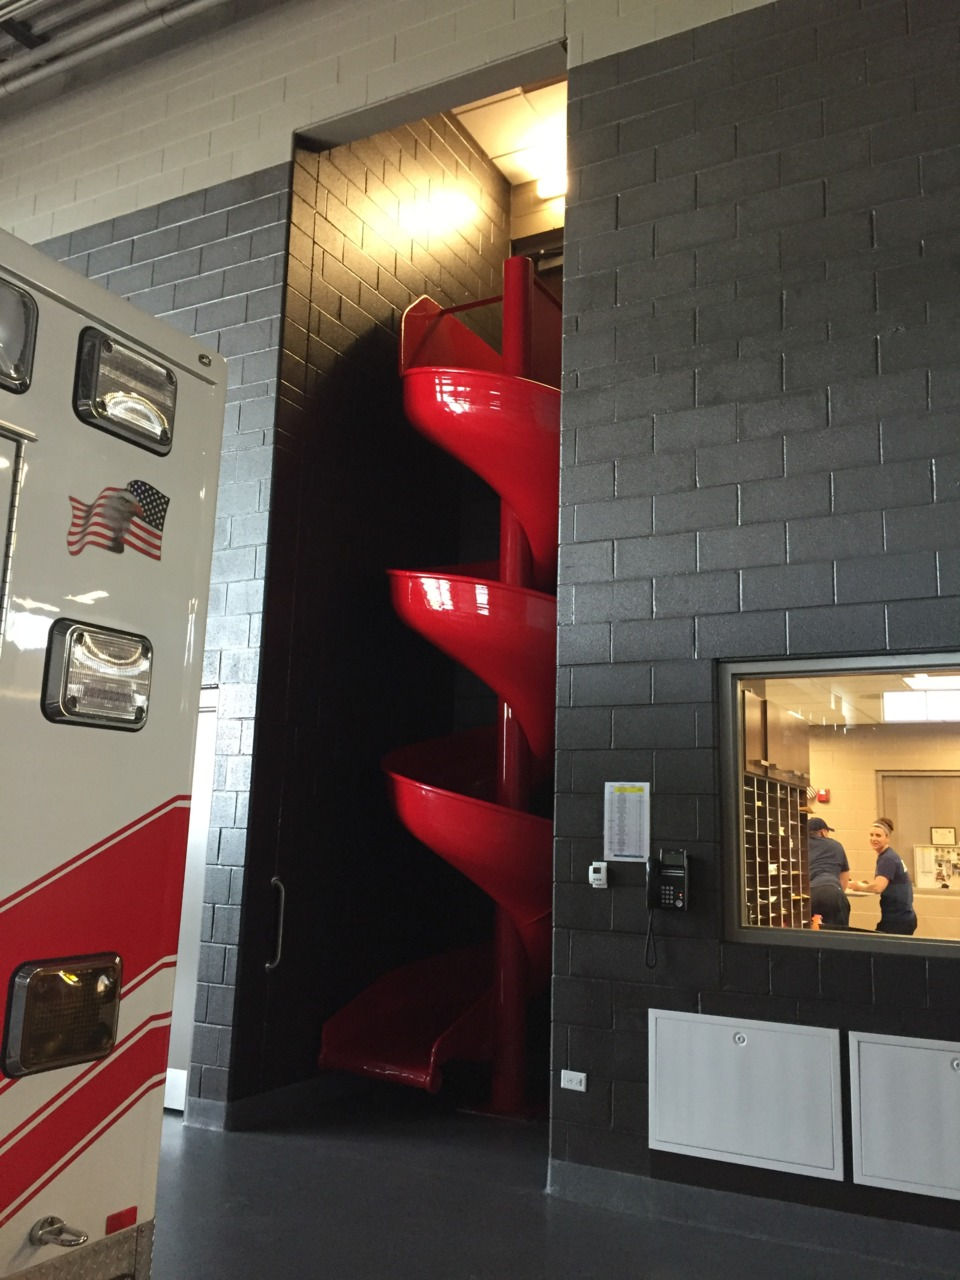 Decontamination Room Design: Combination Firehouse Designed For Effectiveness, Living